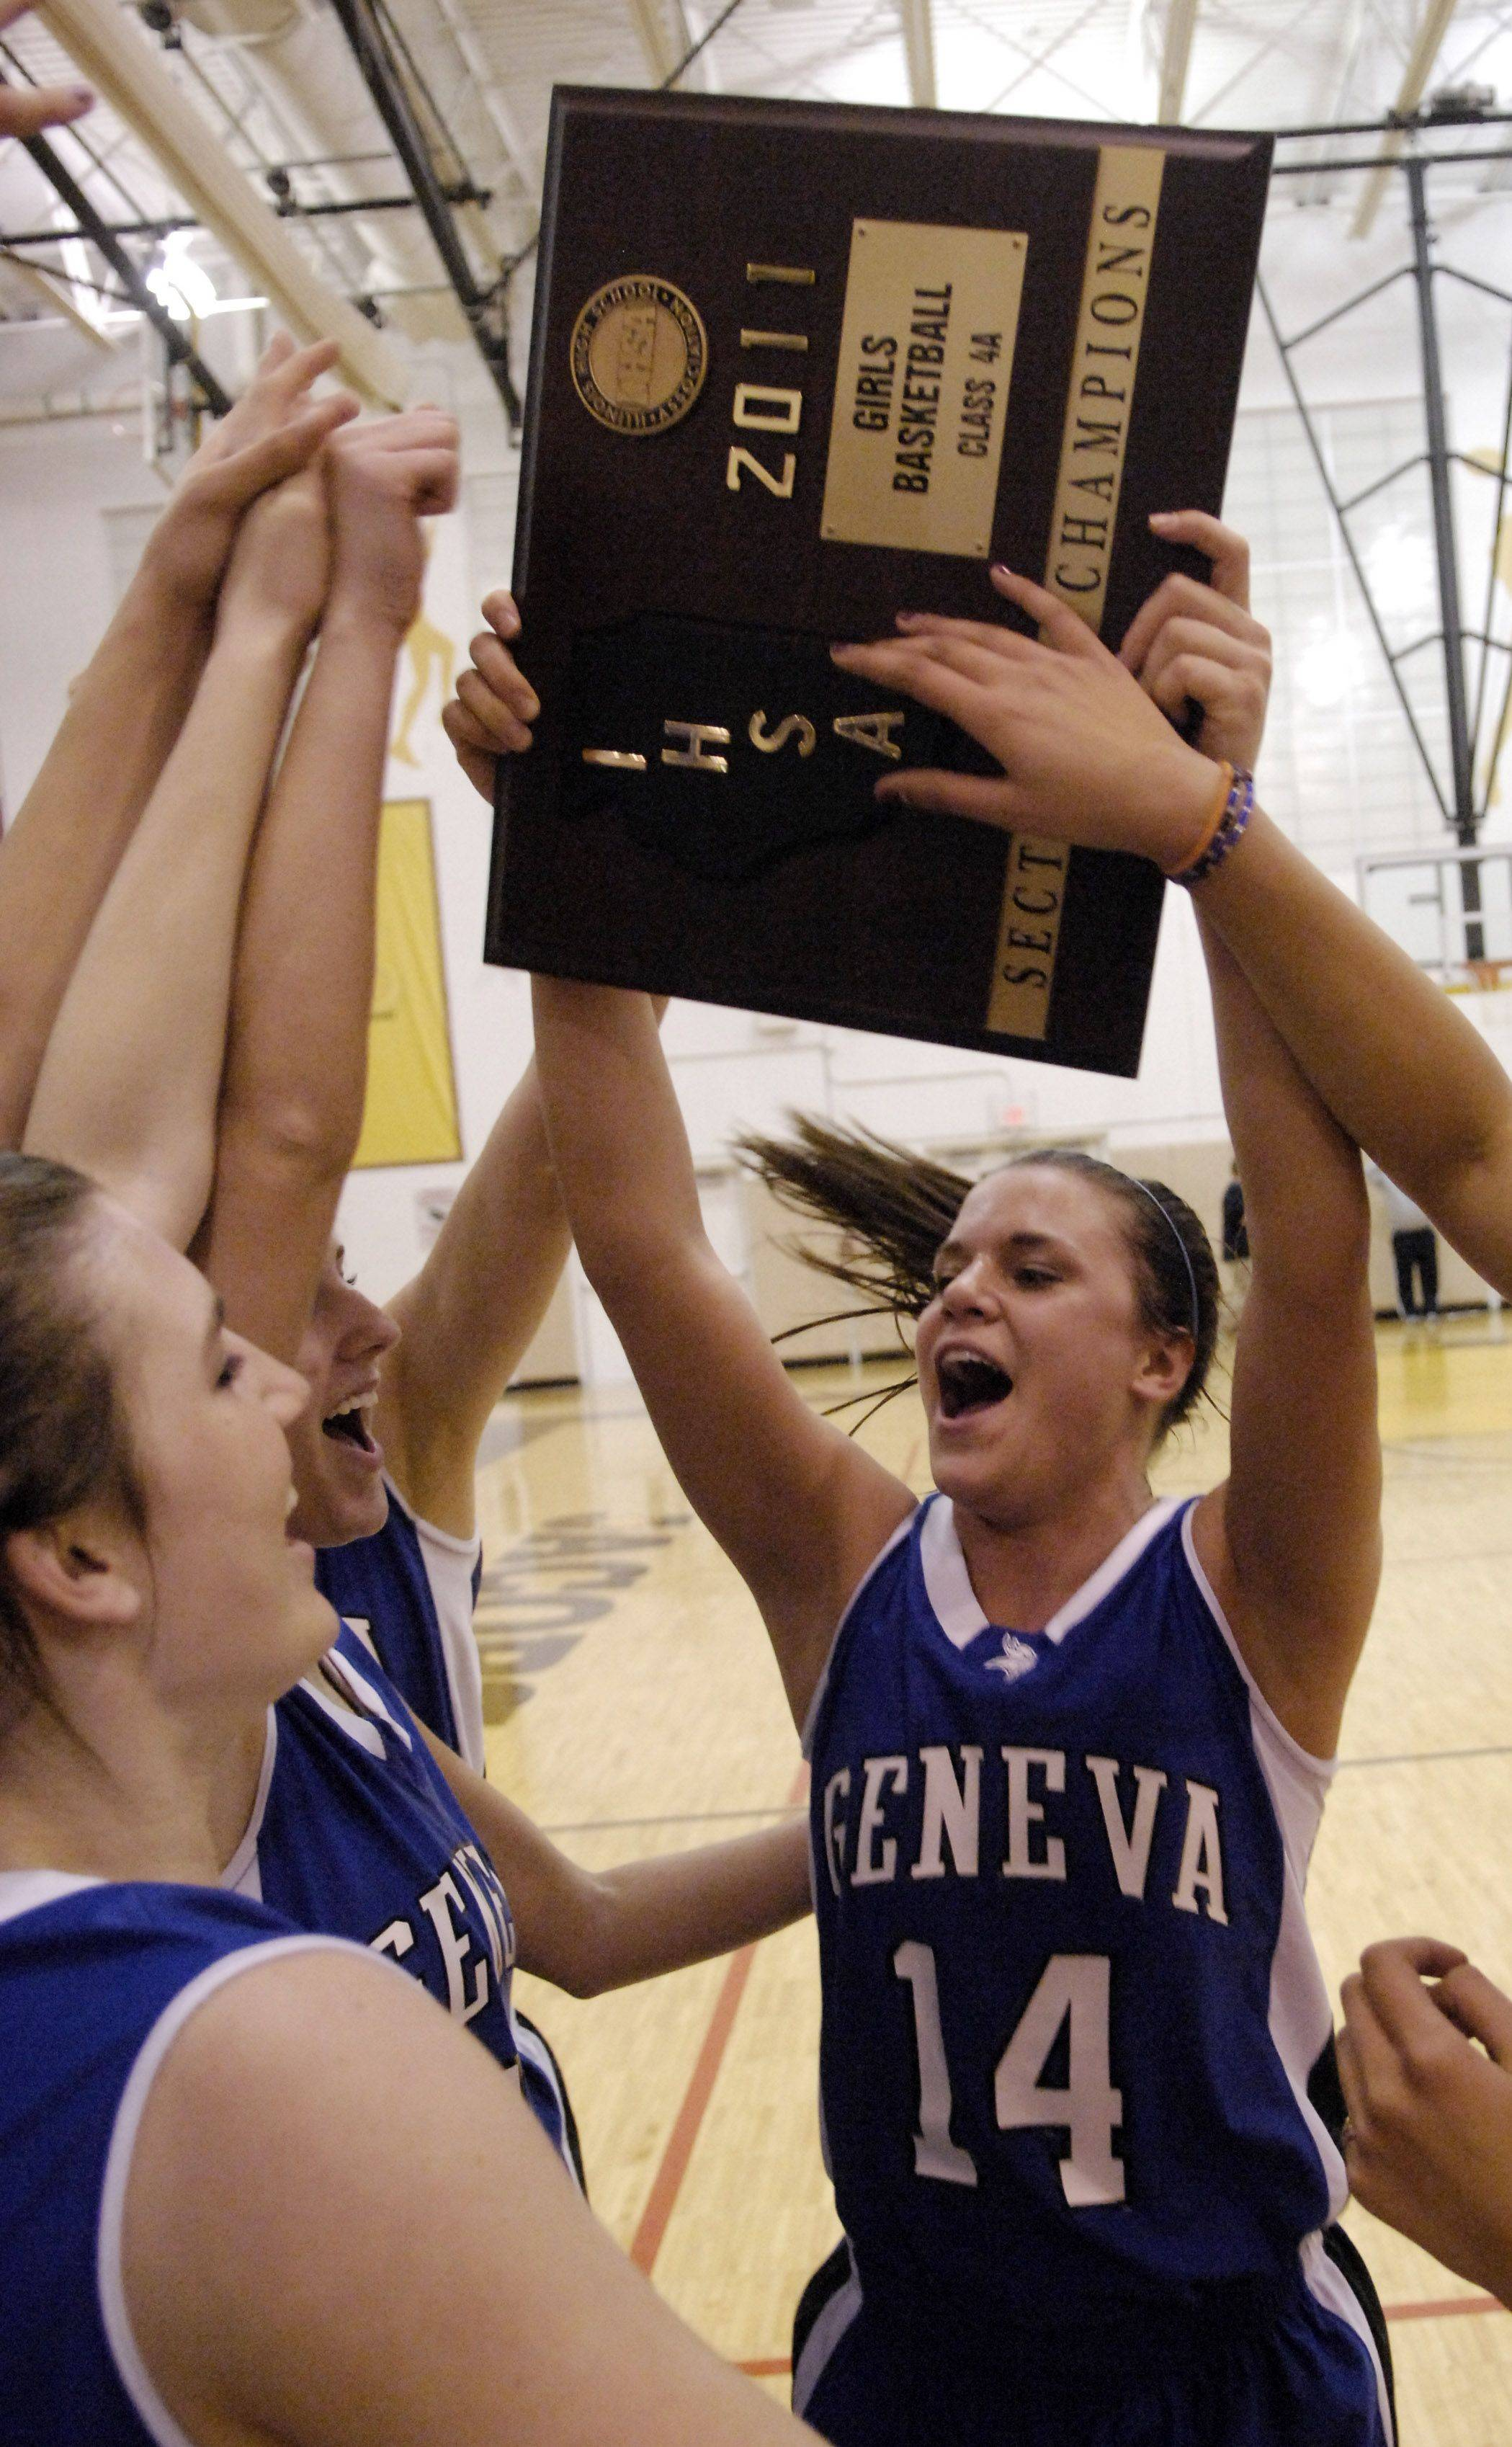 Geneva�s Kat Yelle hoists up the sectional championship plaque following their win over Cary-Grove Thursday at Jacobs High School in Algonquin.